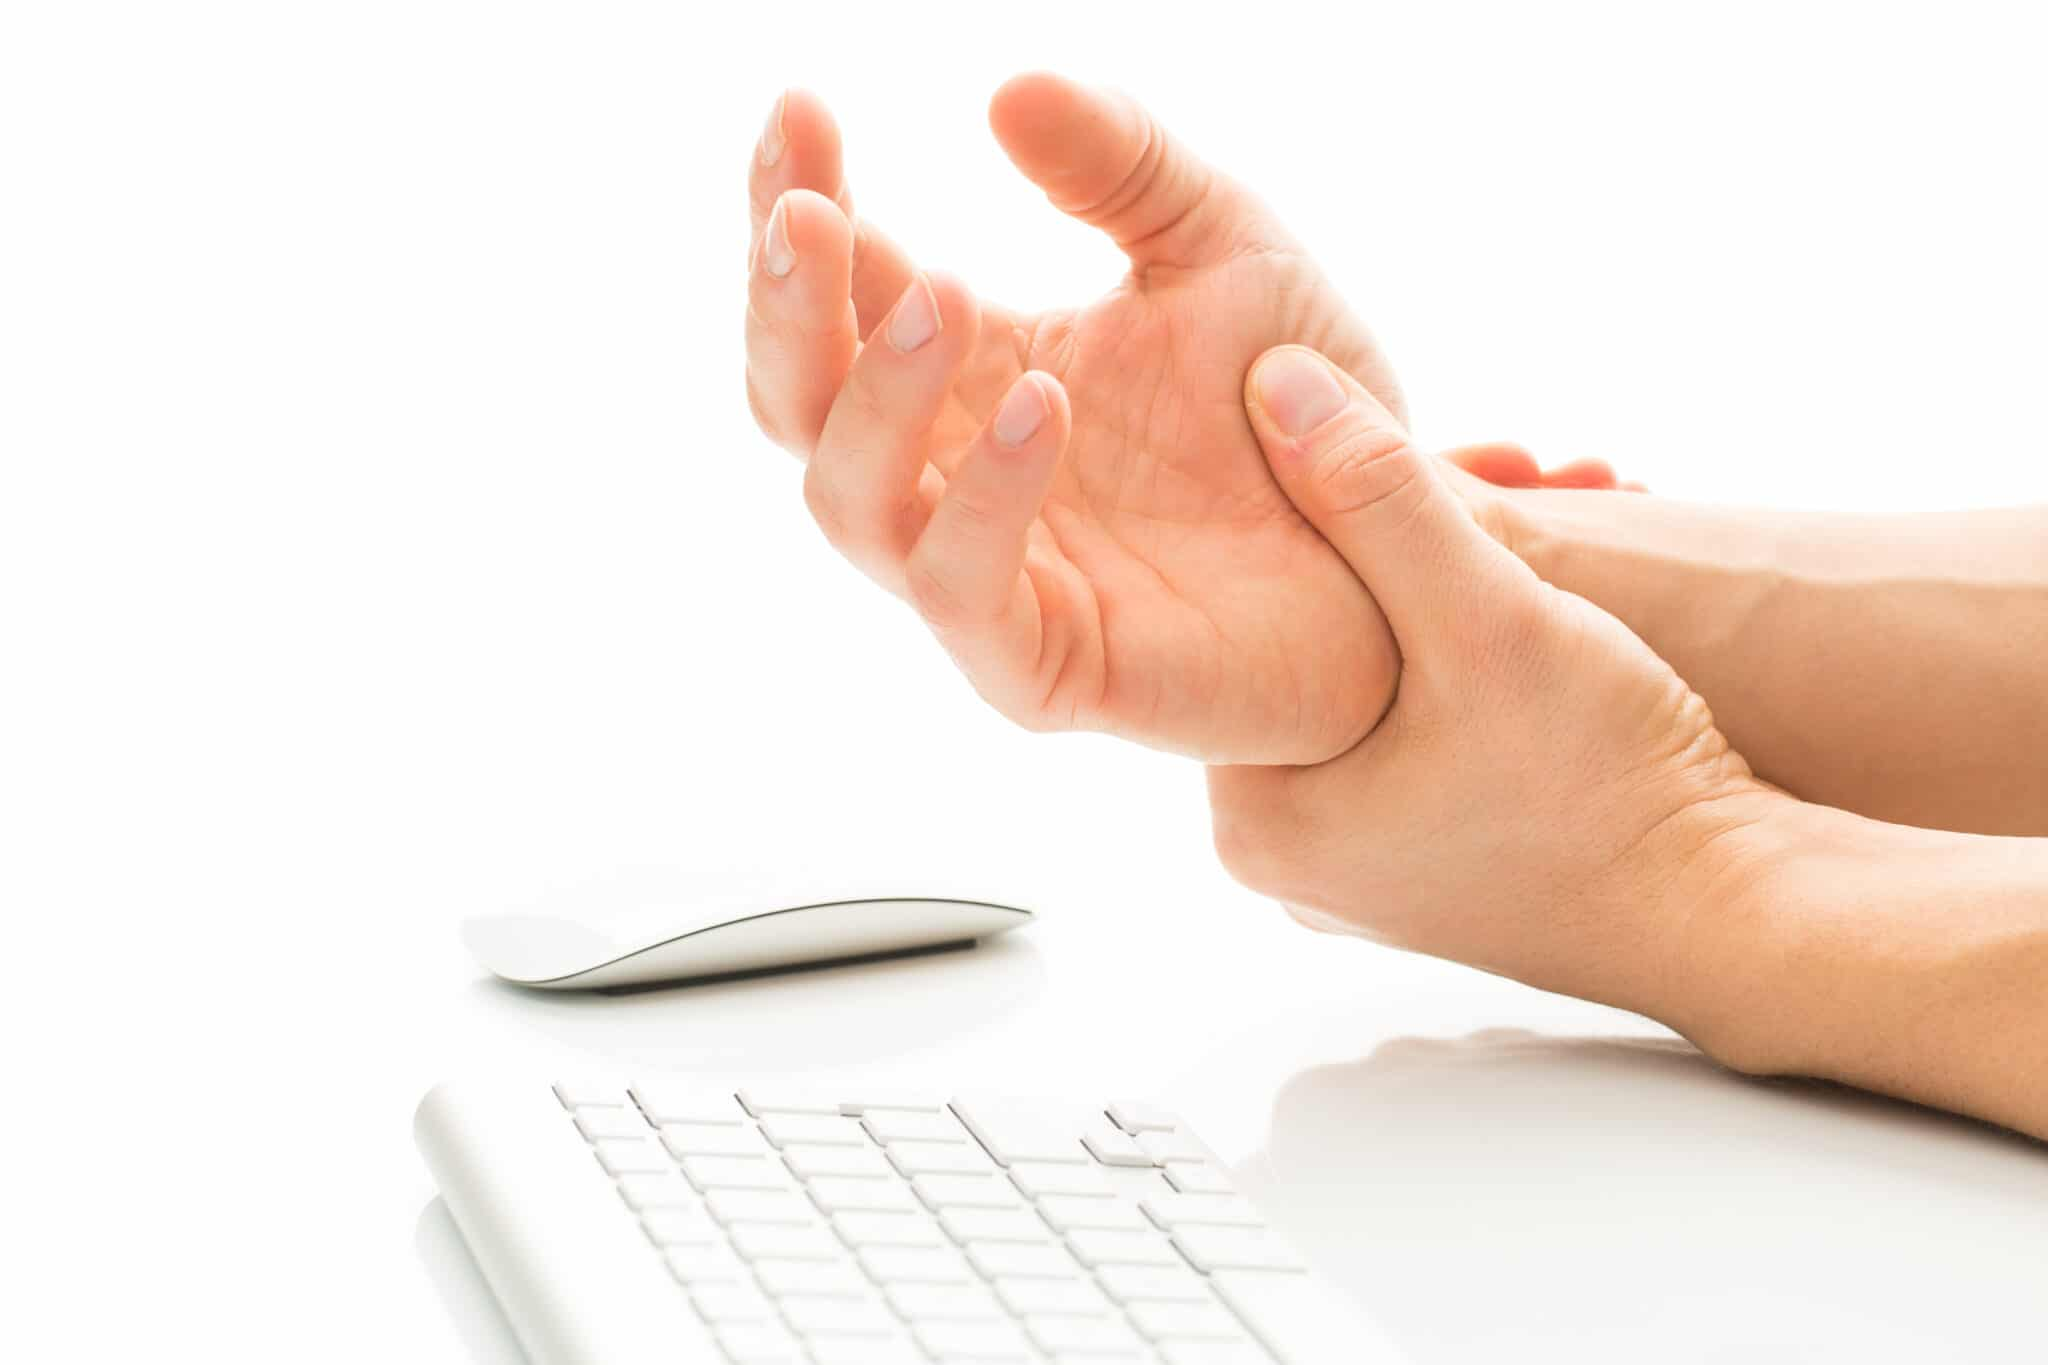 Man holding wrist while at a computer